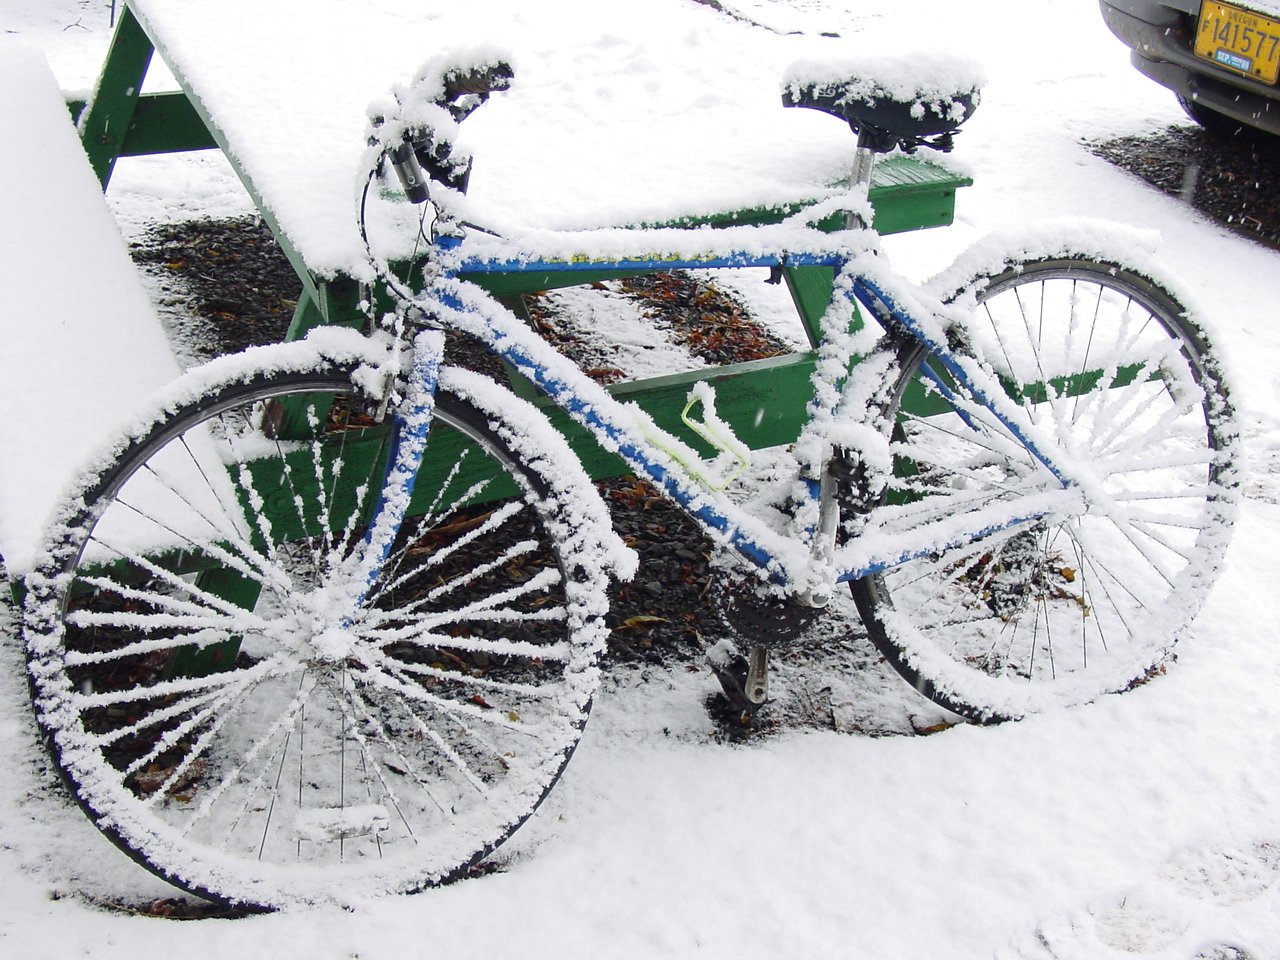 [12/18/08] - It's going to be a cold ride home from work today..